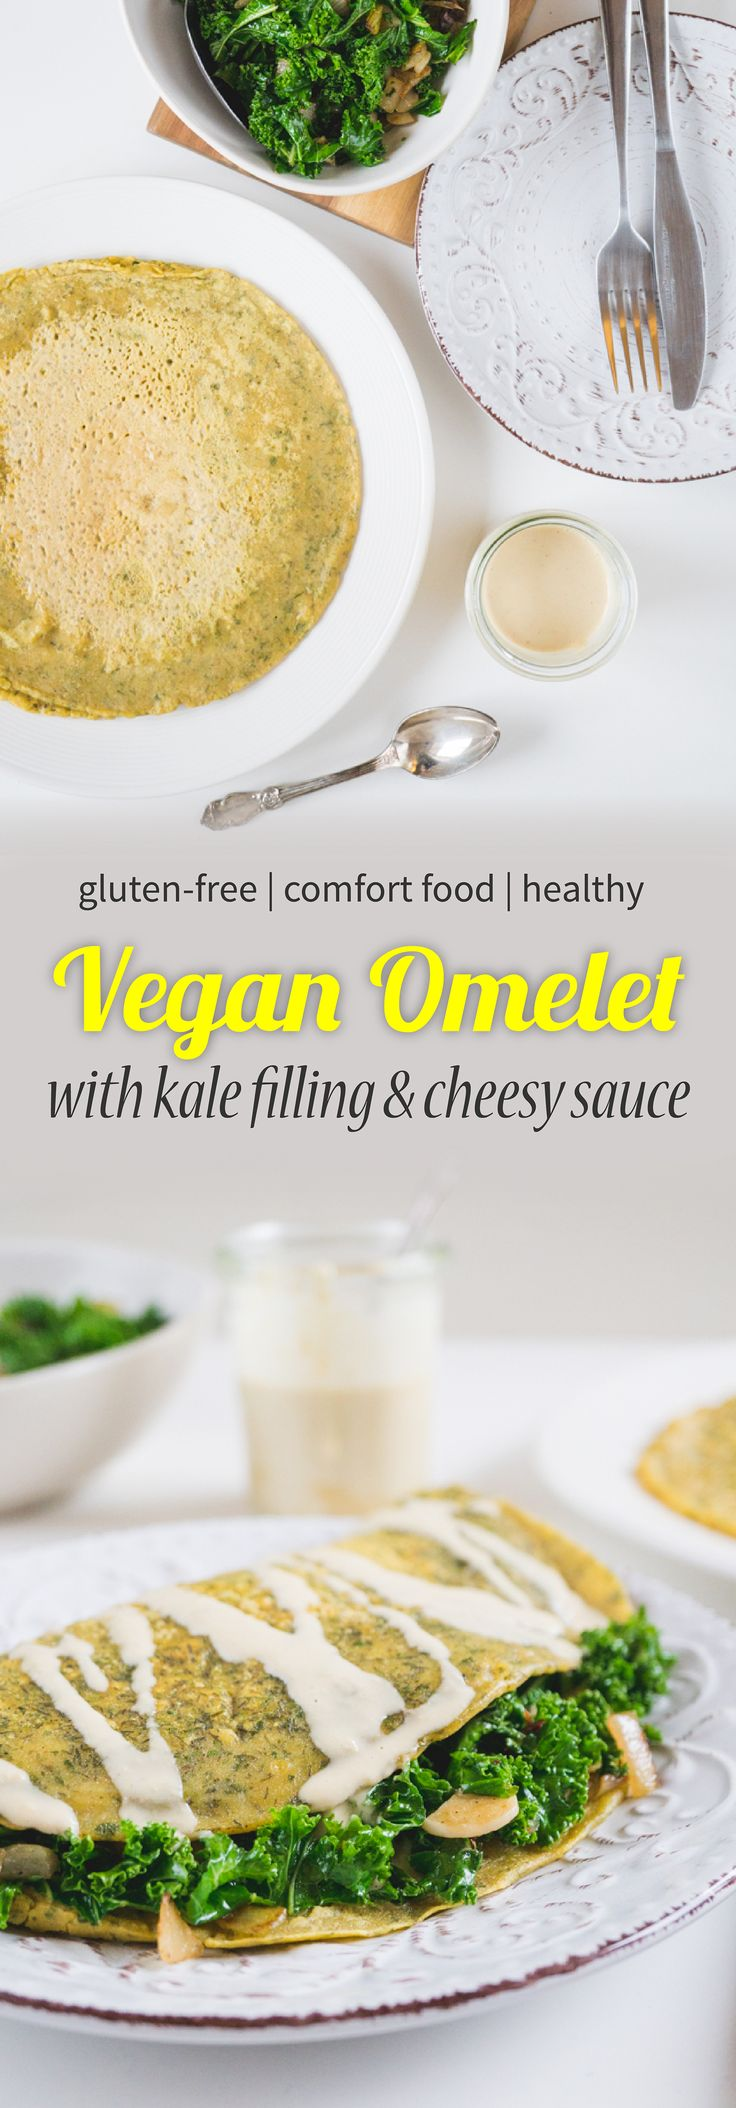 Vegan omelet with kale filling and cheesy tahini sauce.